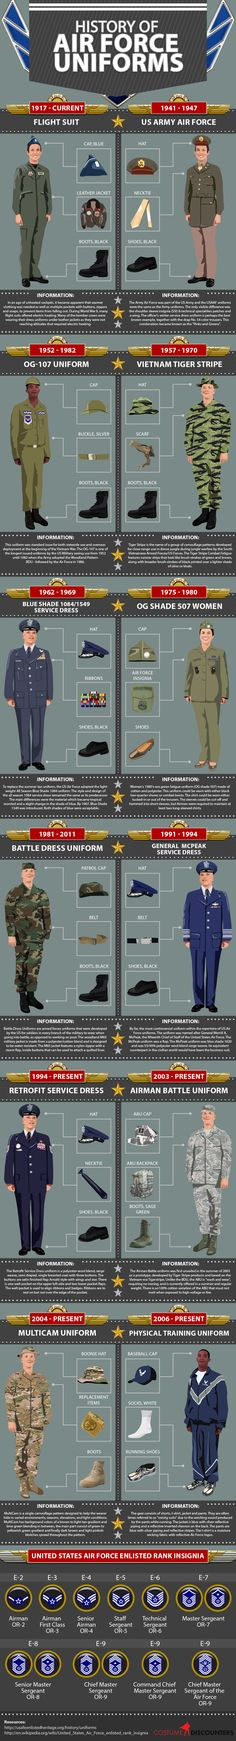 History of Air Force Uniforms                                                                                                                                                                                 More